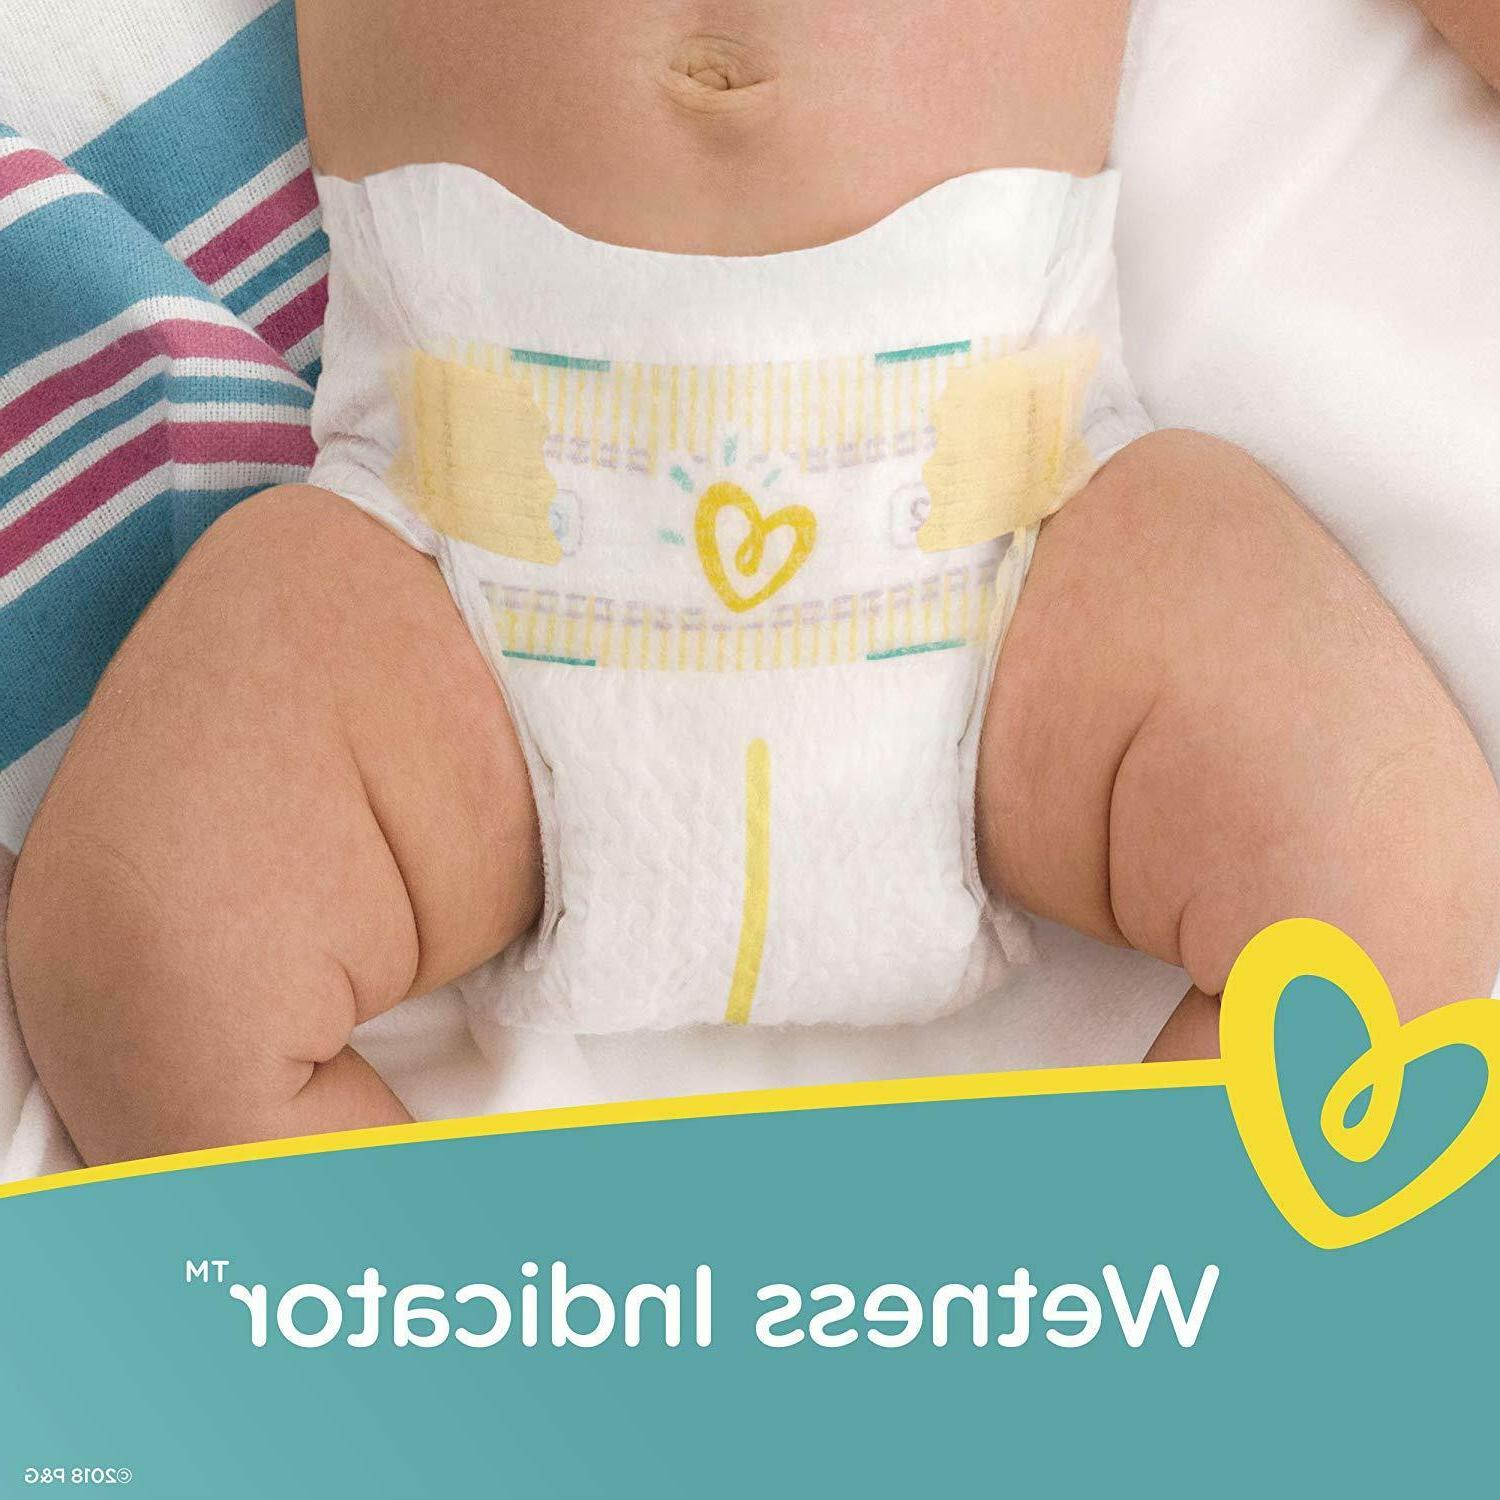 Pampers Count Swaddlers Disposable Diaper Dry